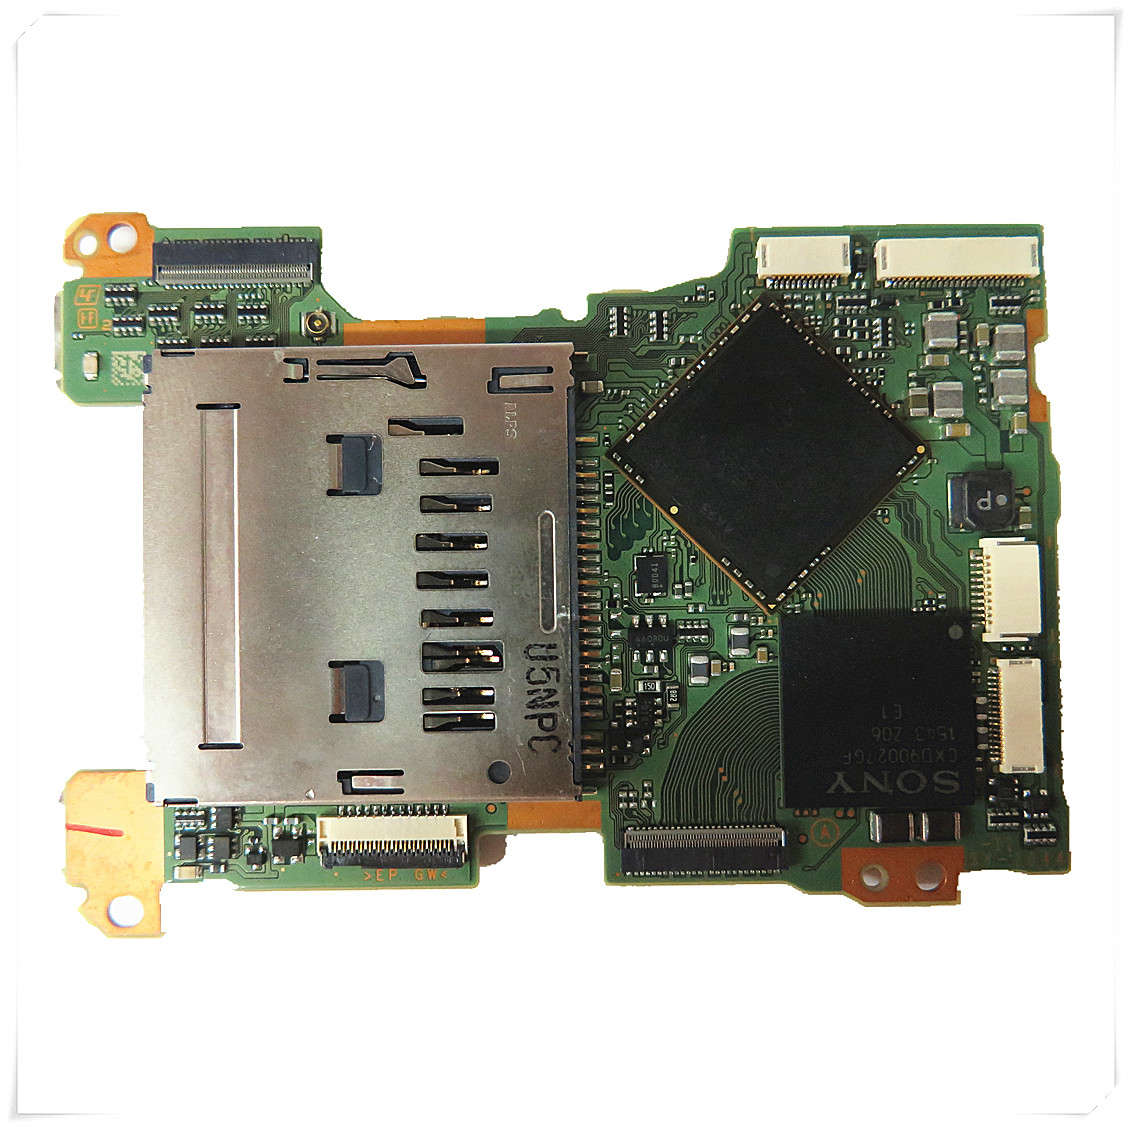 100% Original Alpha 5100 Ilce-5100 Ilce-5100l Ilce-5100y Main Board Mother Board For Sony A5100